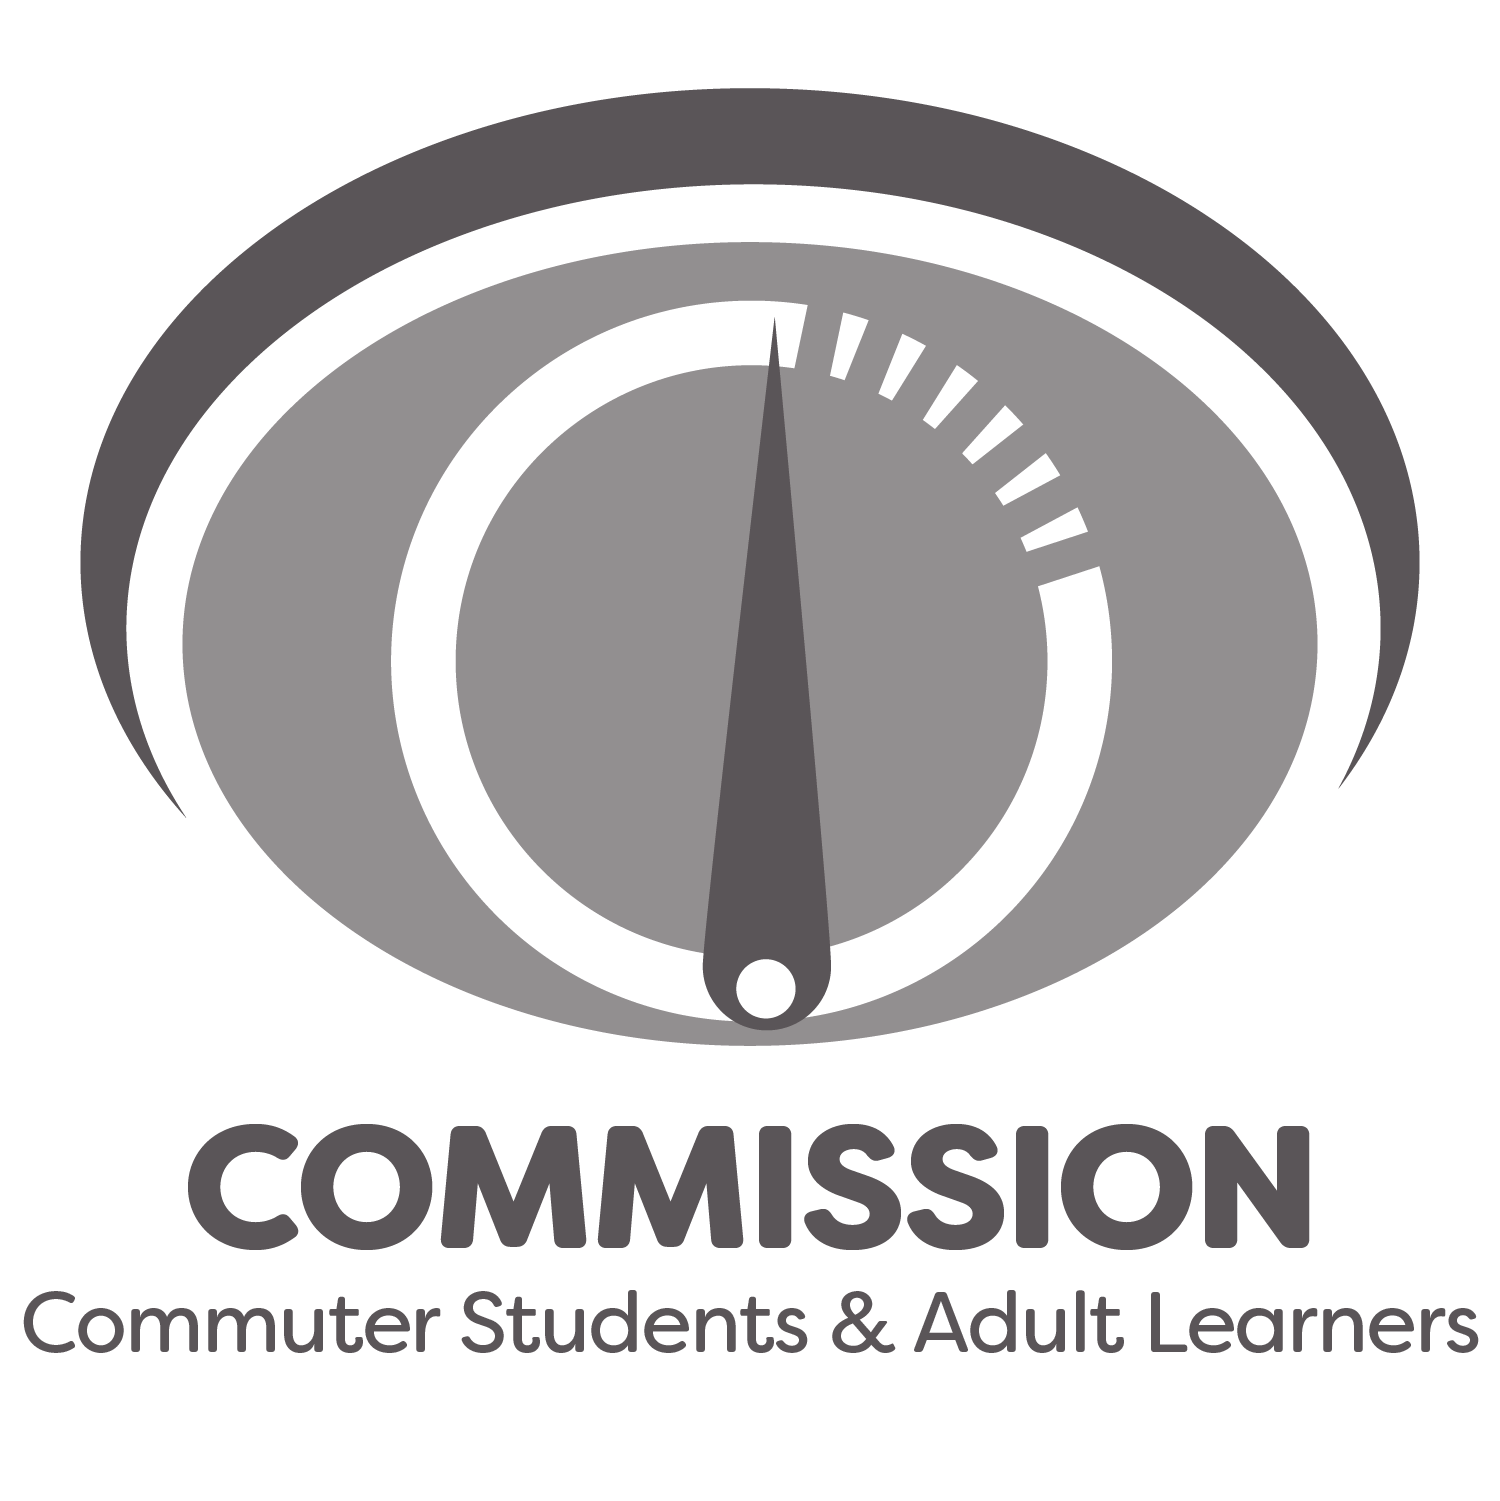 Commission for Commuter Students & Adult Learners logo